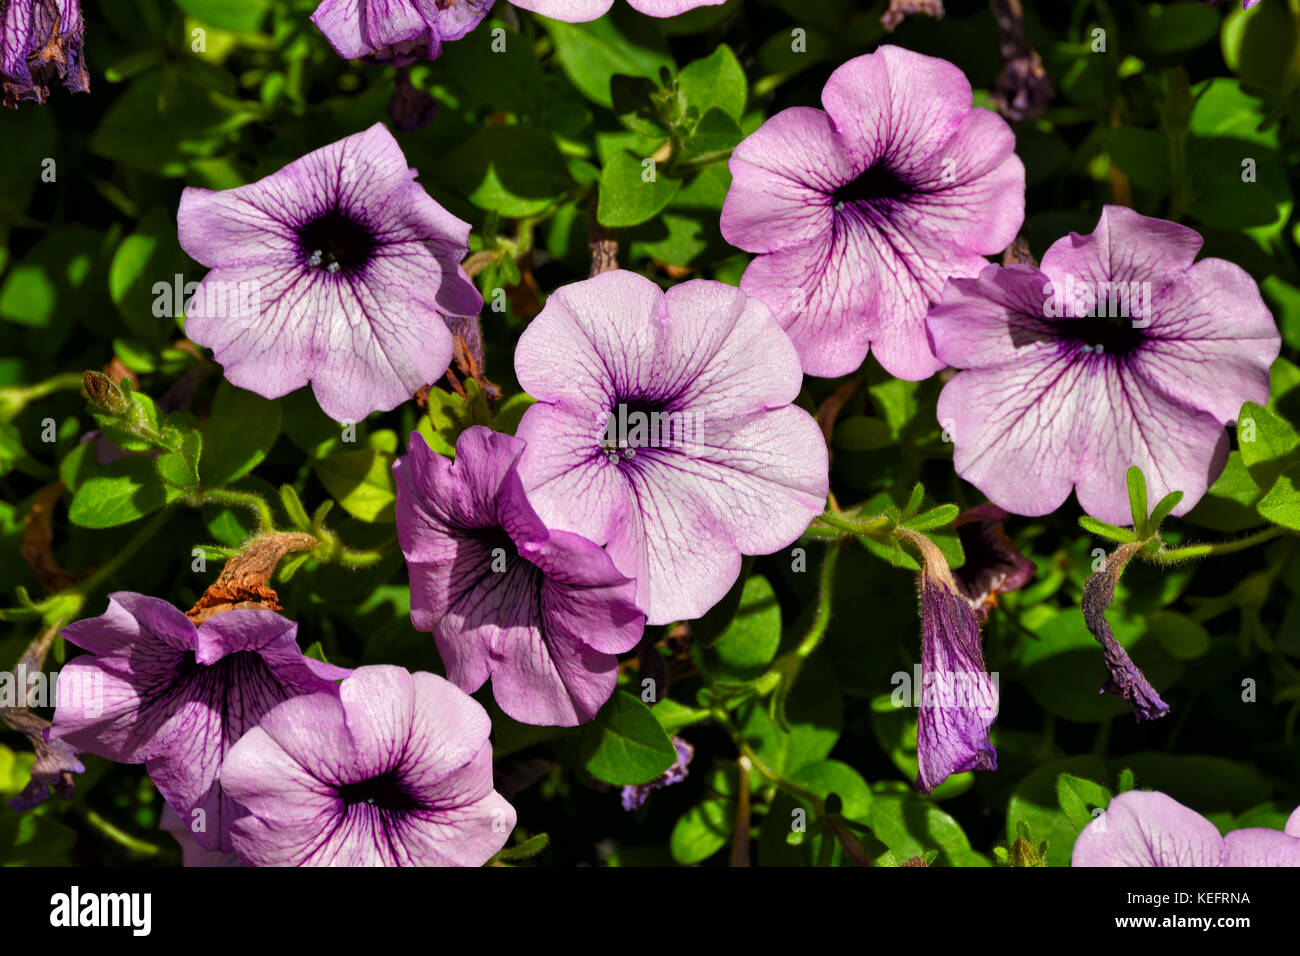 Trumpet Shaped Flowers Stock Photos Trumpet Shaped Flowers Stock